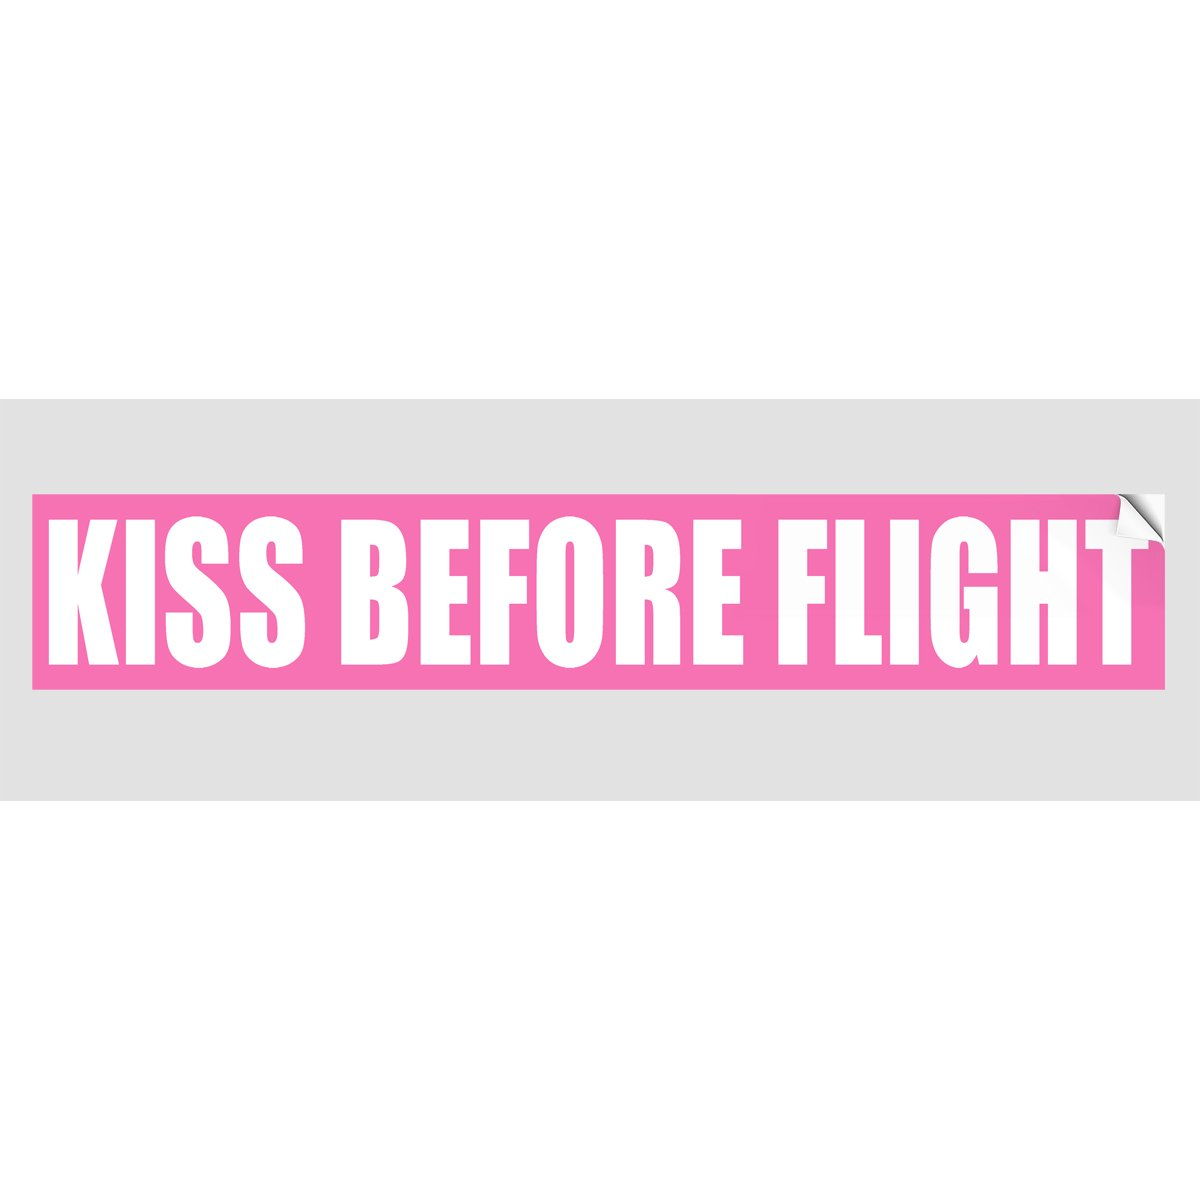 KISS BEFORE FLIGHT